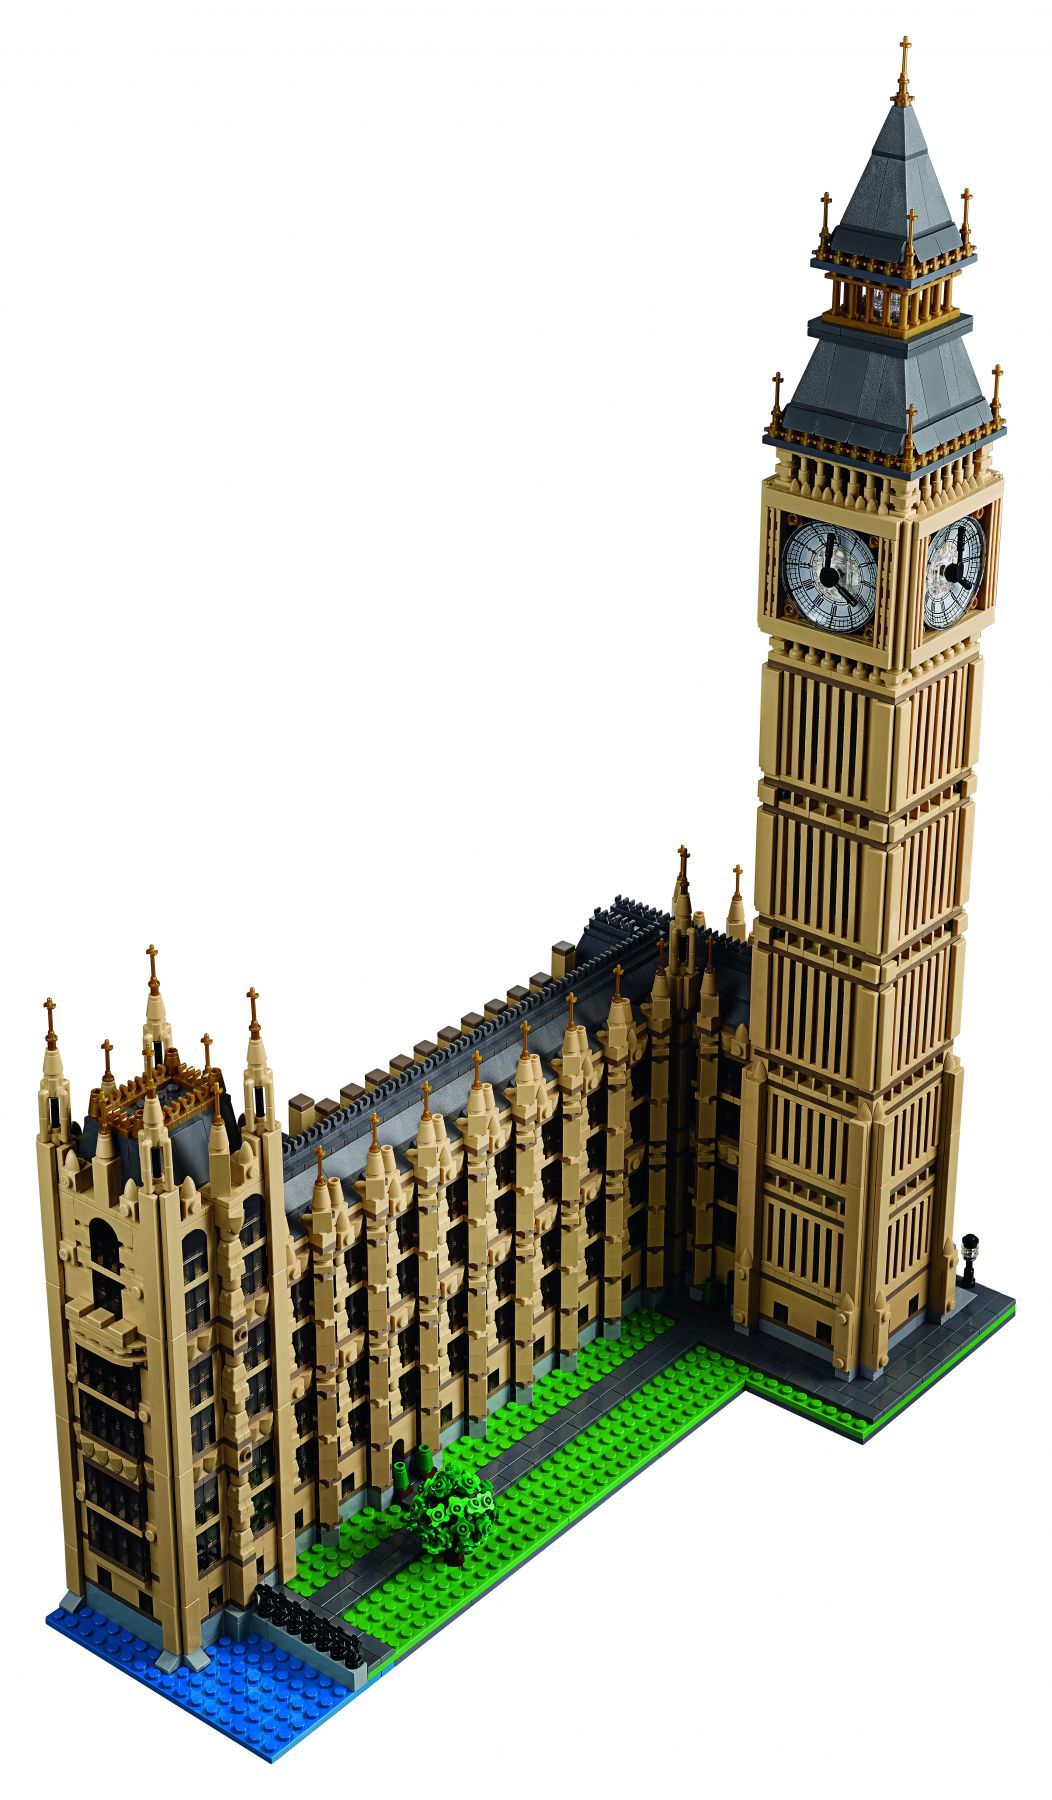 LEGO Advanced Models 10253 Big Ben LEGO_Creator_Big_Ben_10253-14.jpg